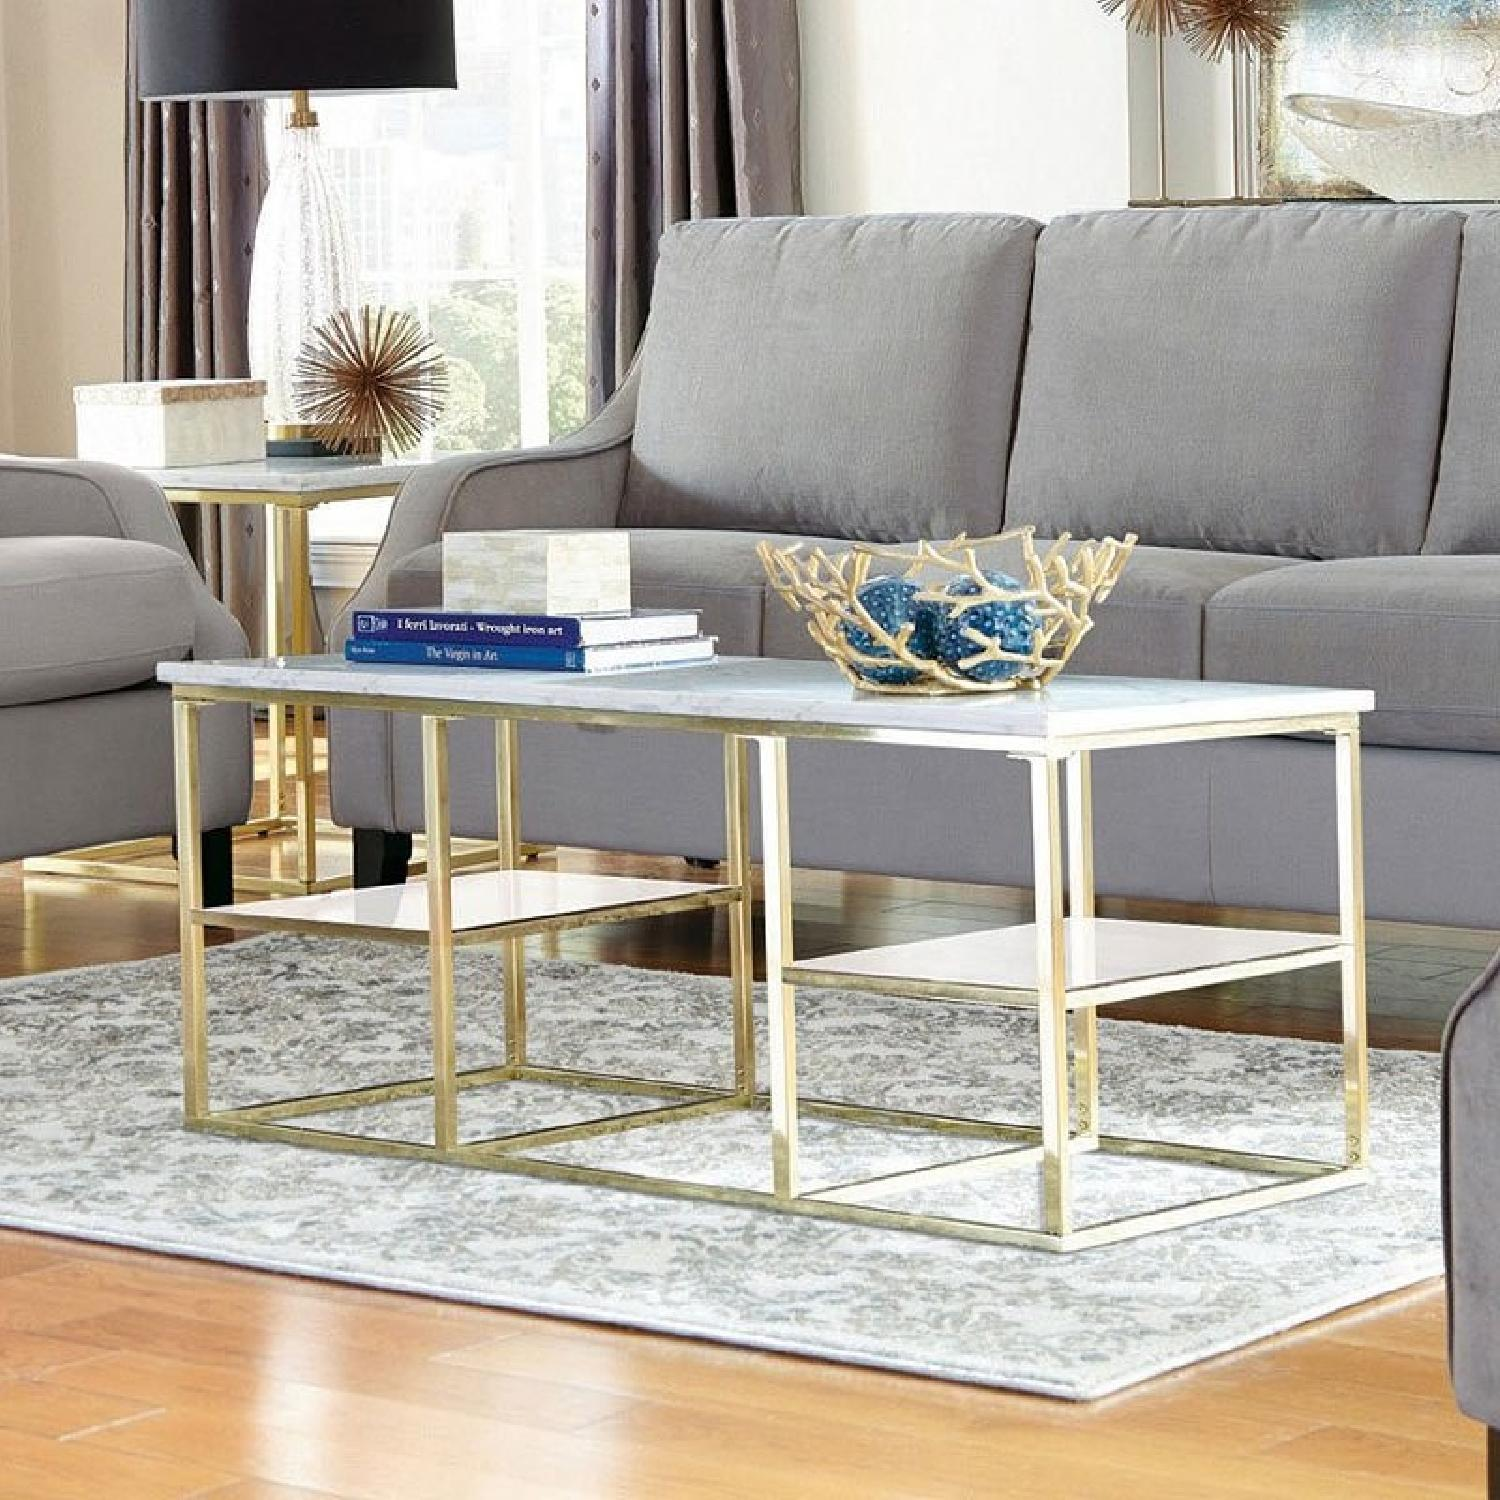 Marble Top Coffee Table w/ Brass Legs-0